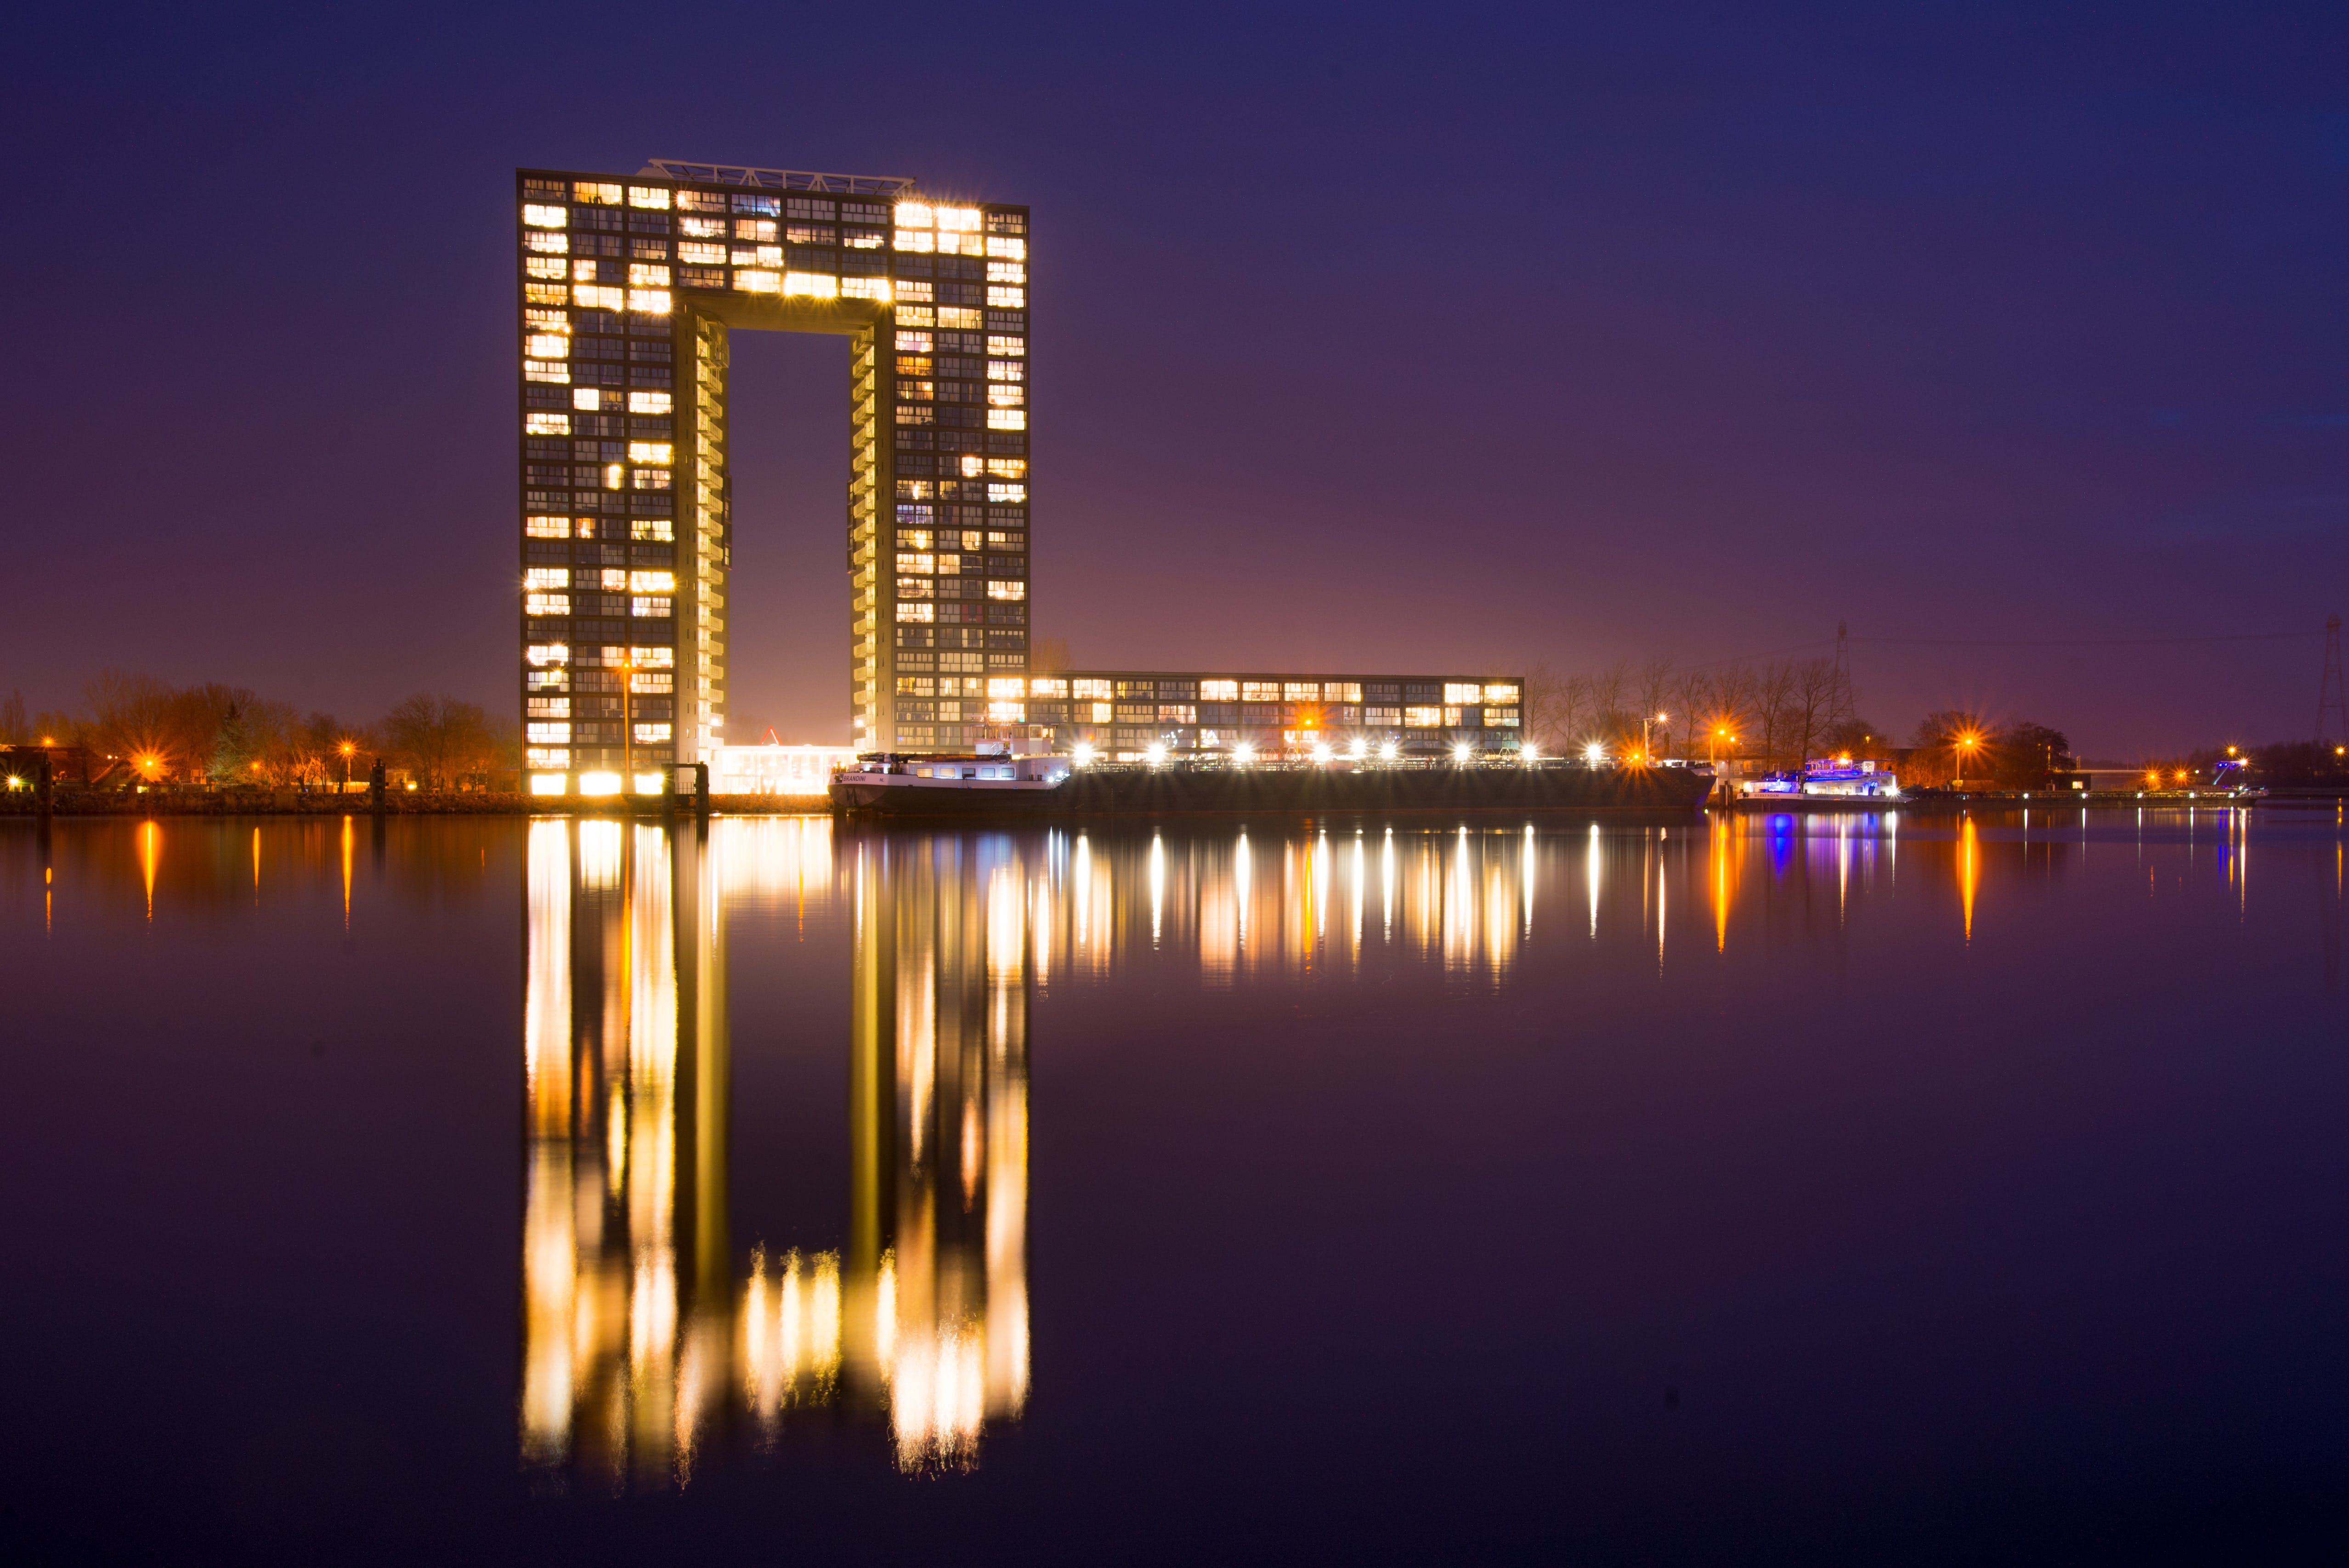 City Building Near Body of Water during Nighttime